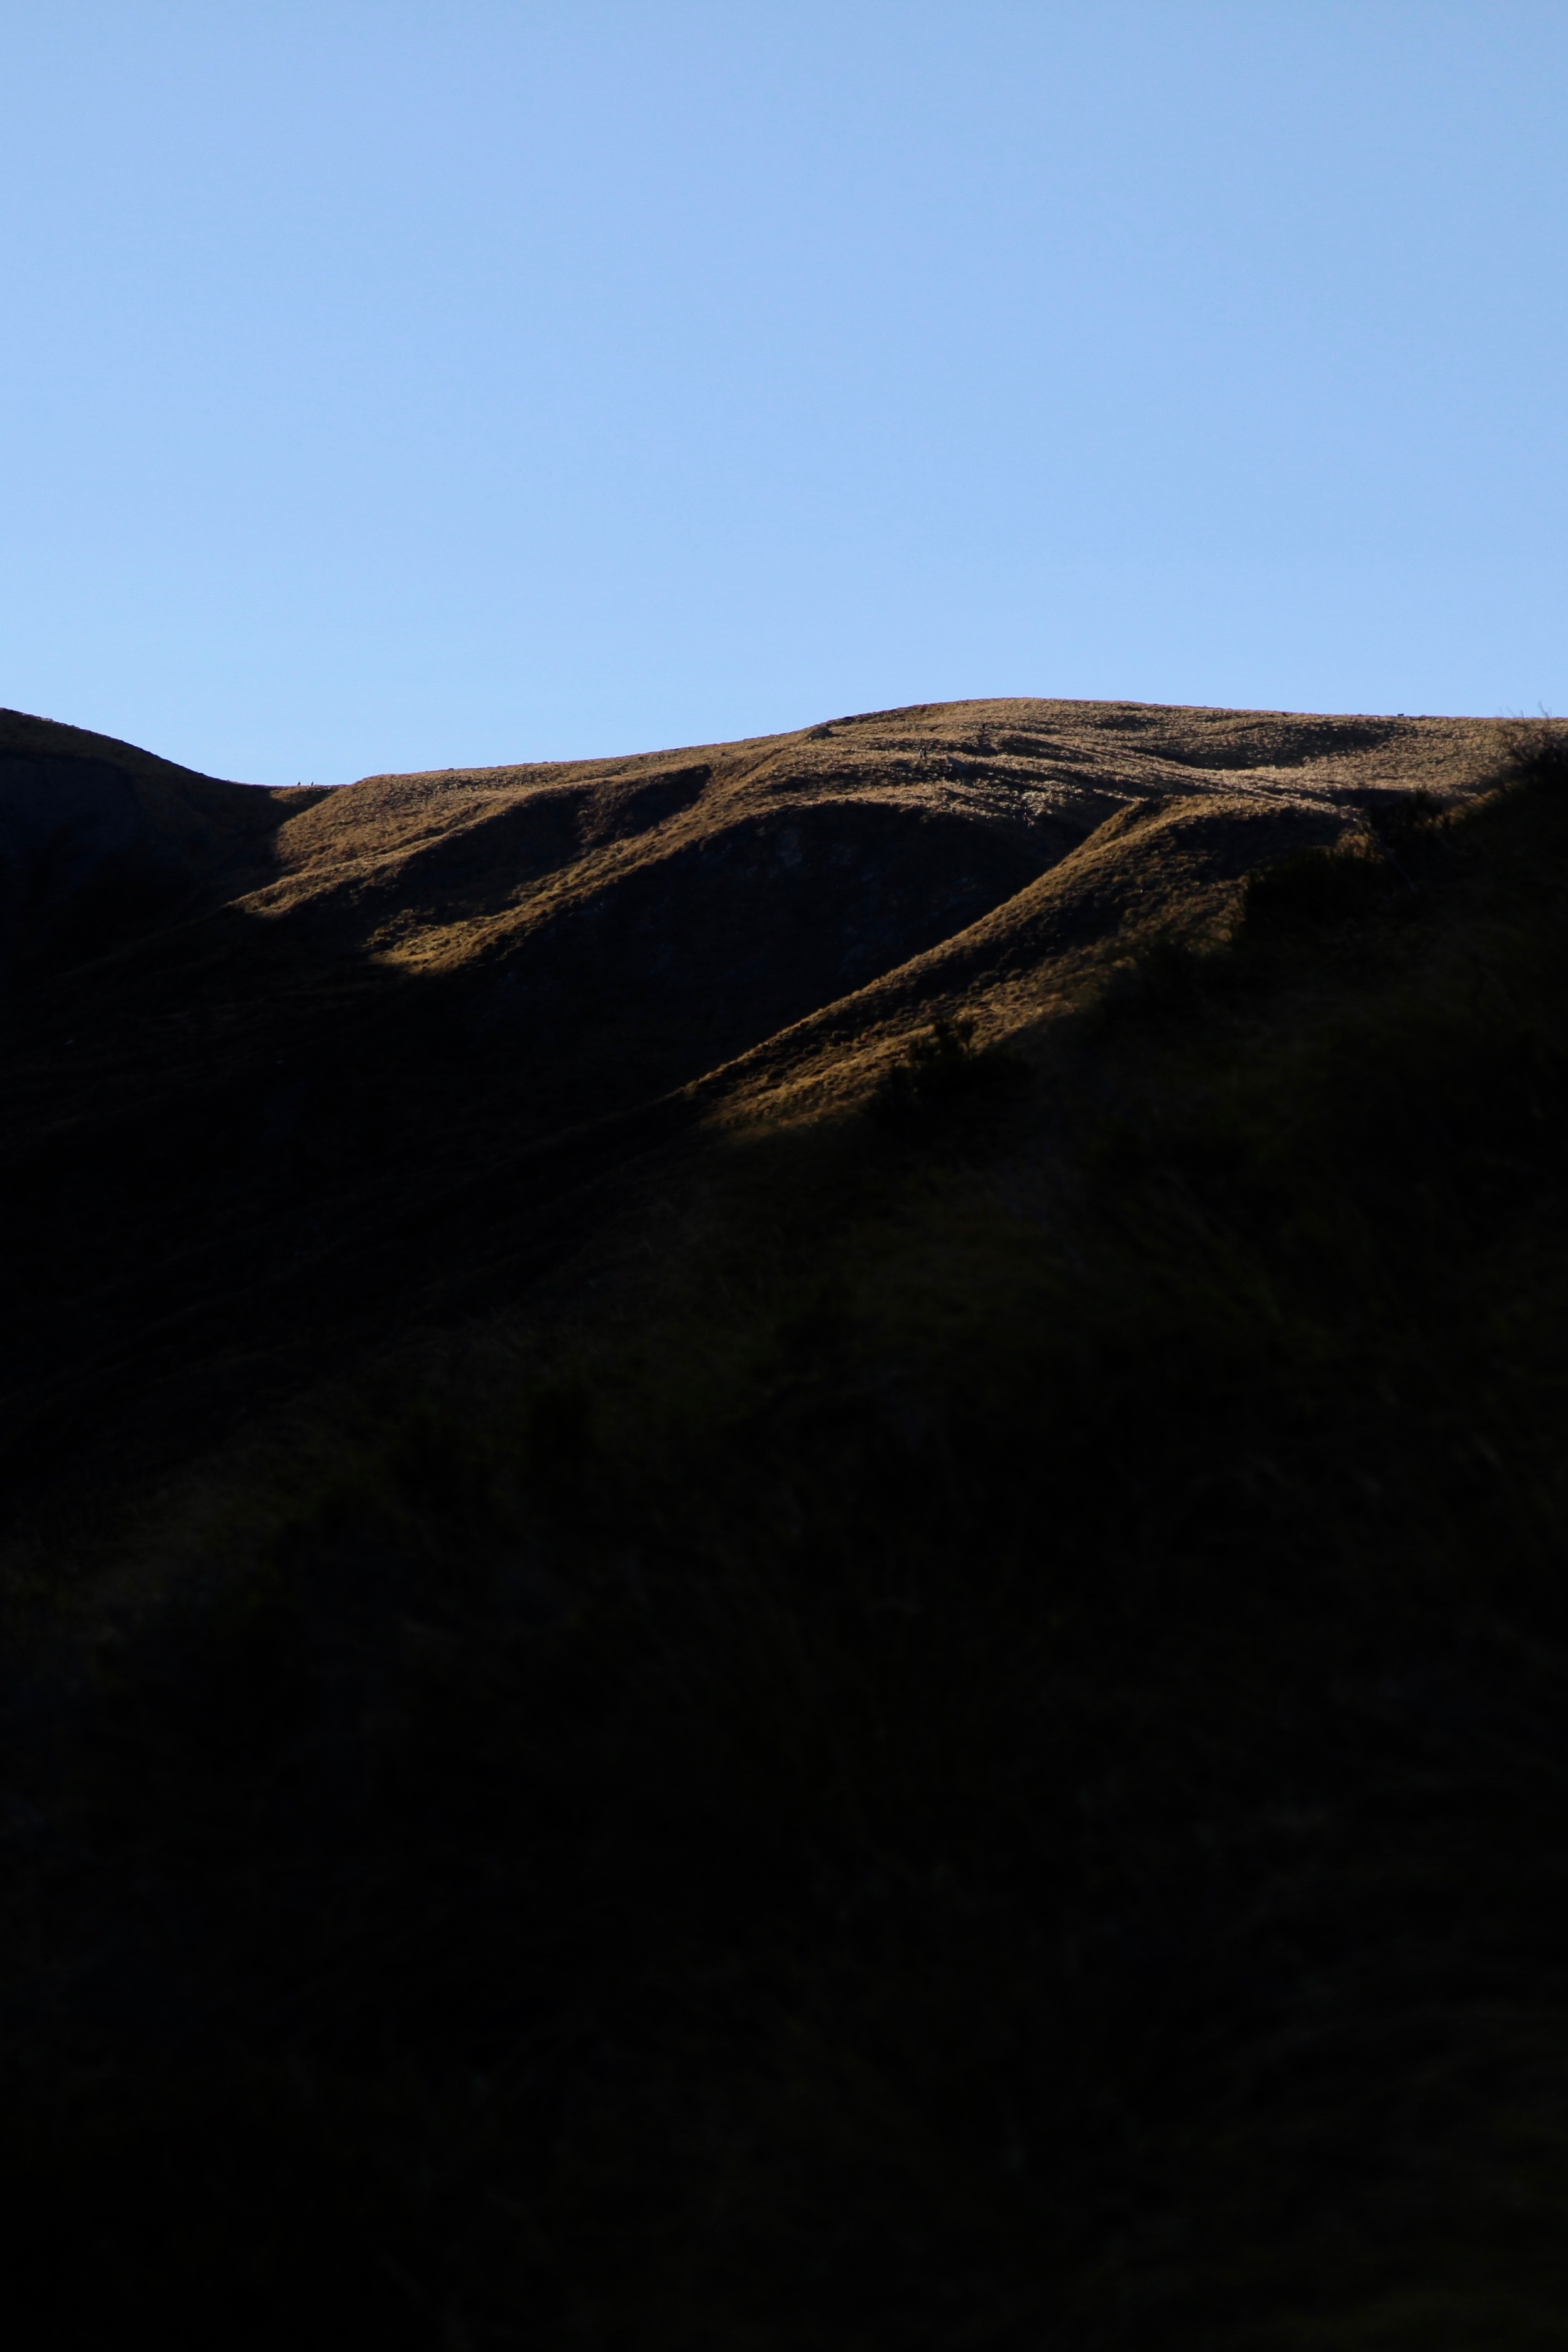 Afternoon shadows on the mountains in Queenstown, viewed from the Ben Lomond track.